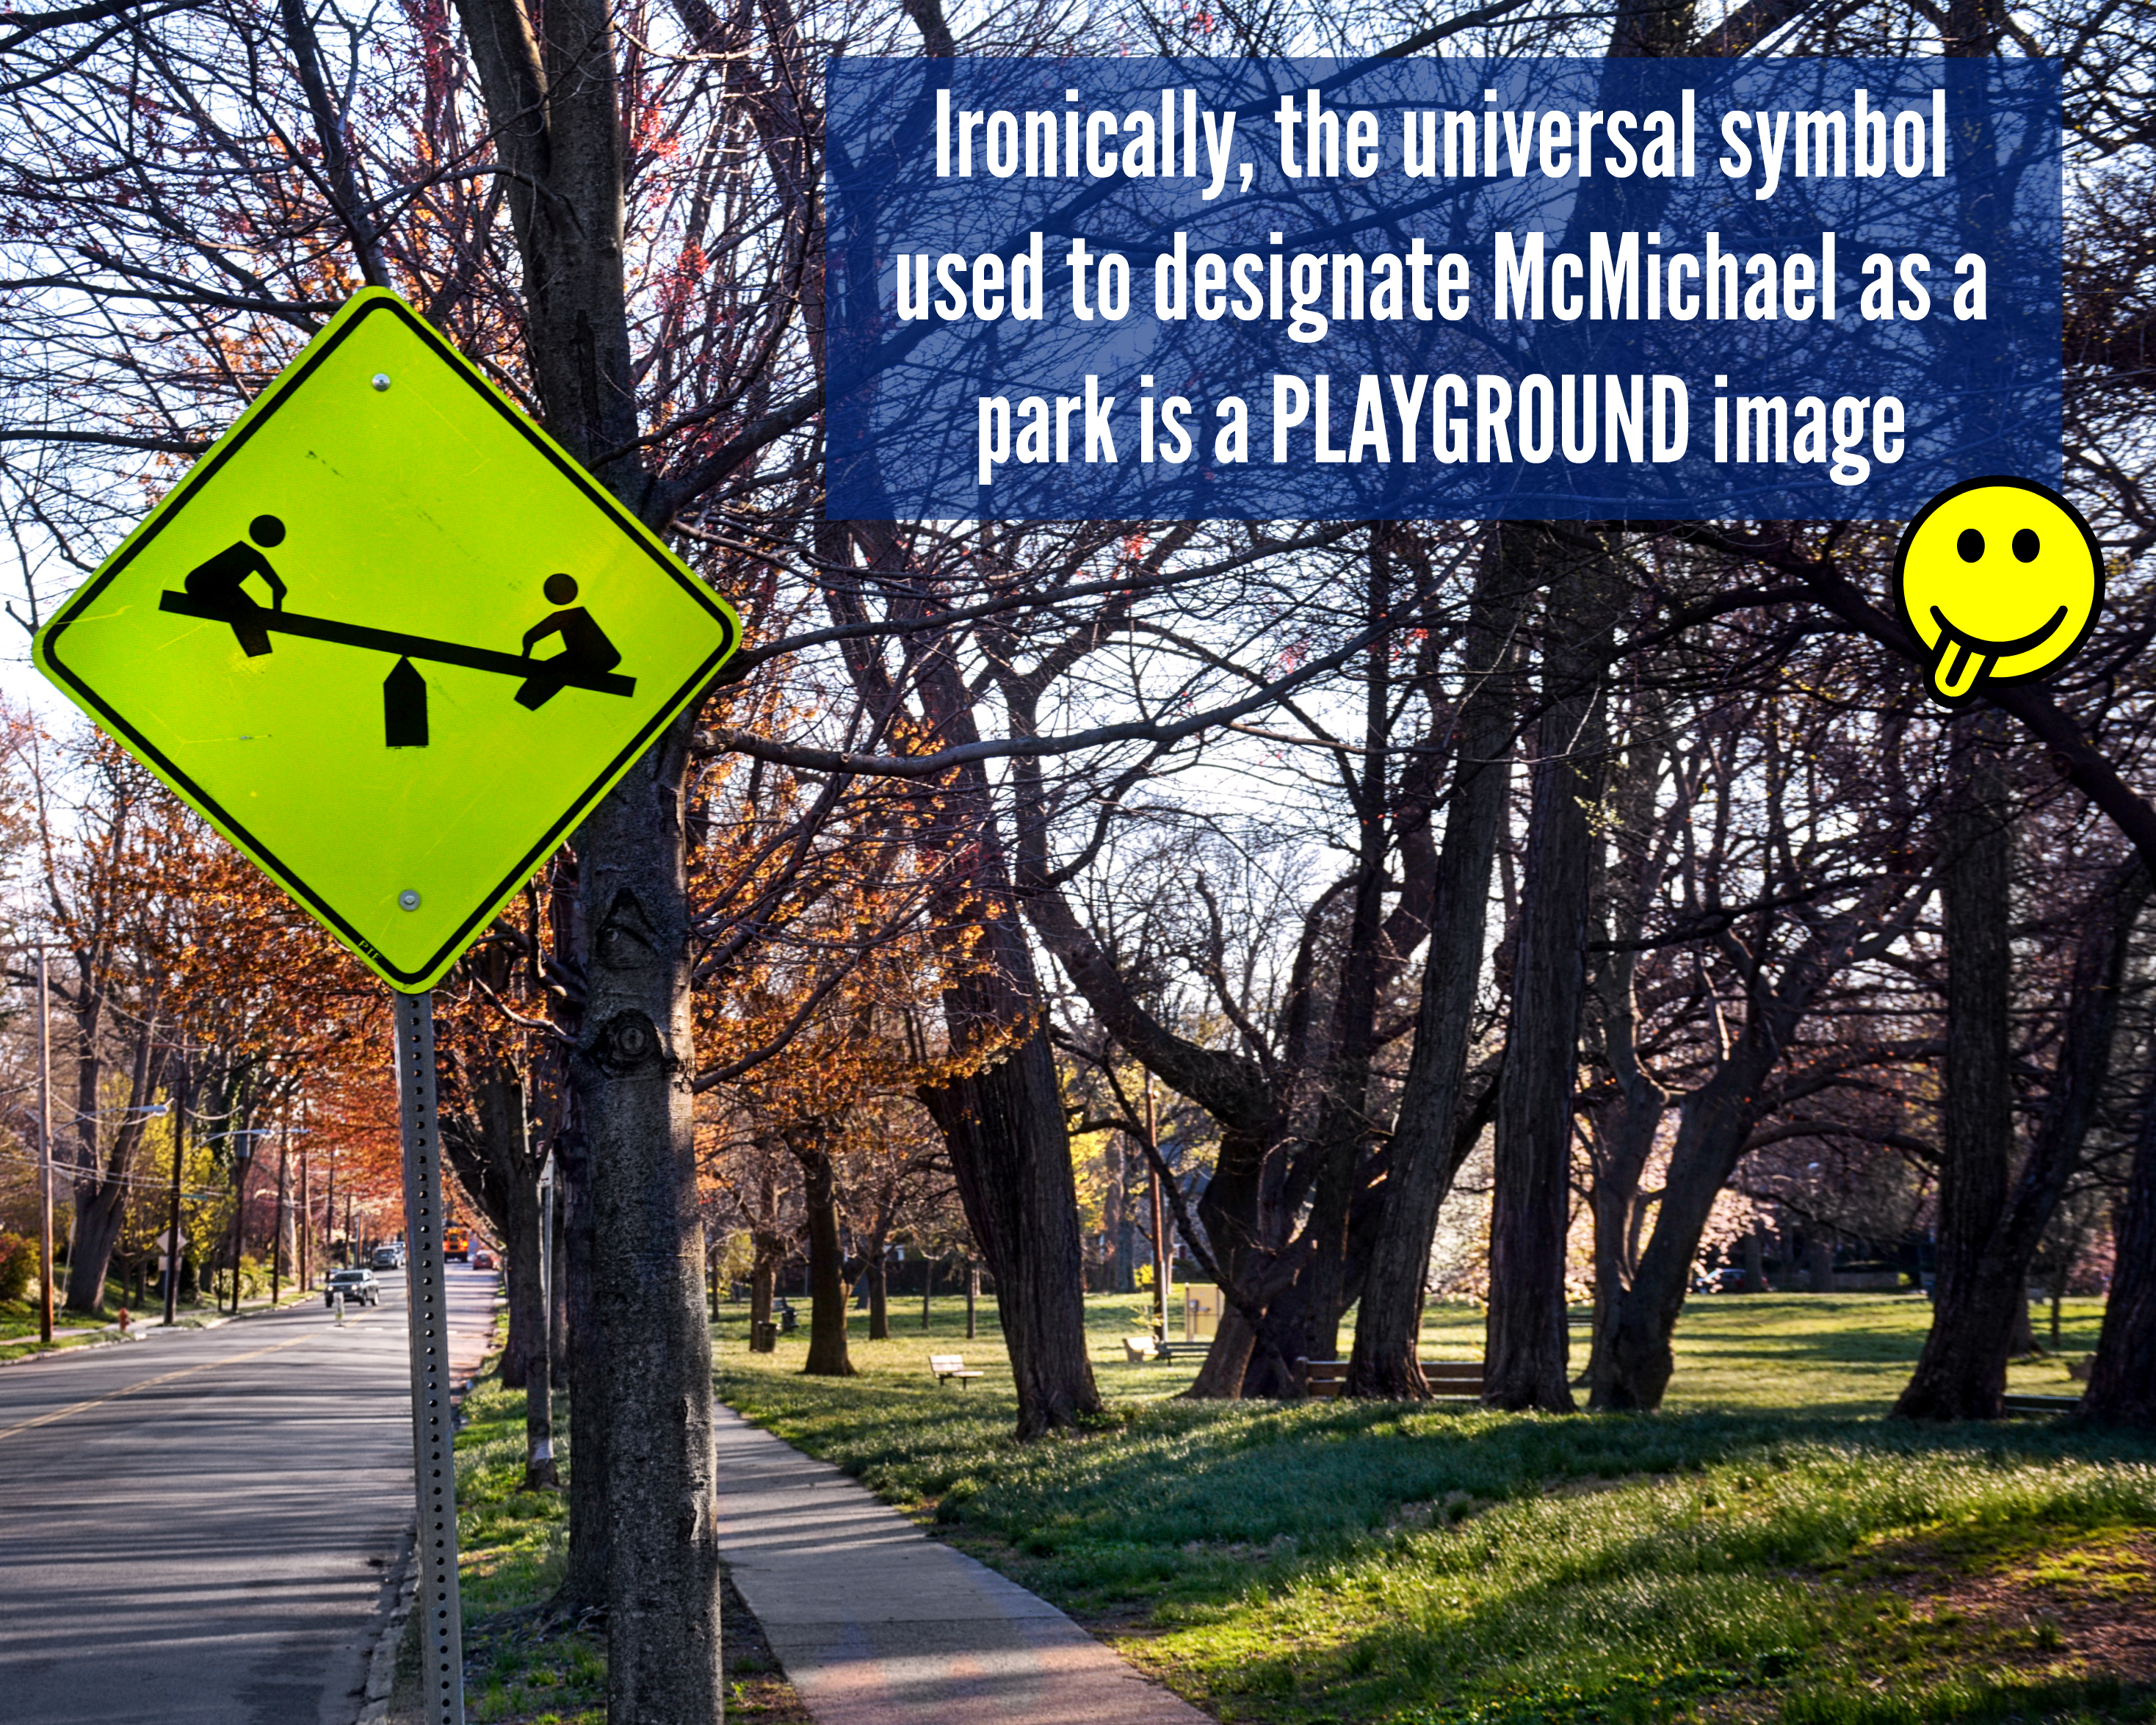 EastFallsLocal 4-8 mcmichael park sign teeter totter RESIZED text